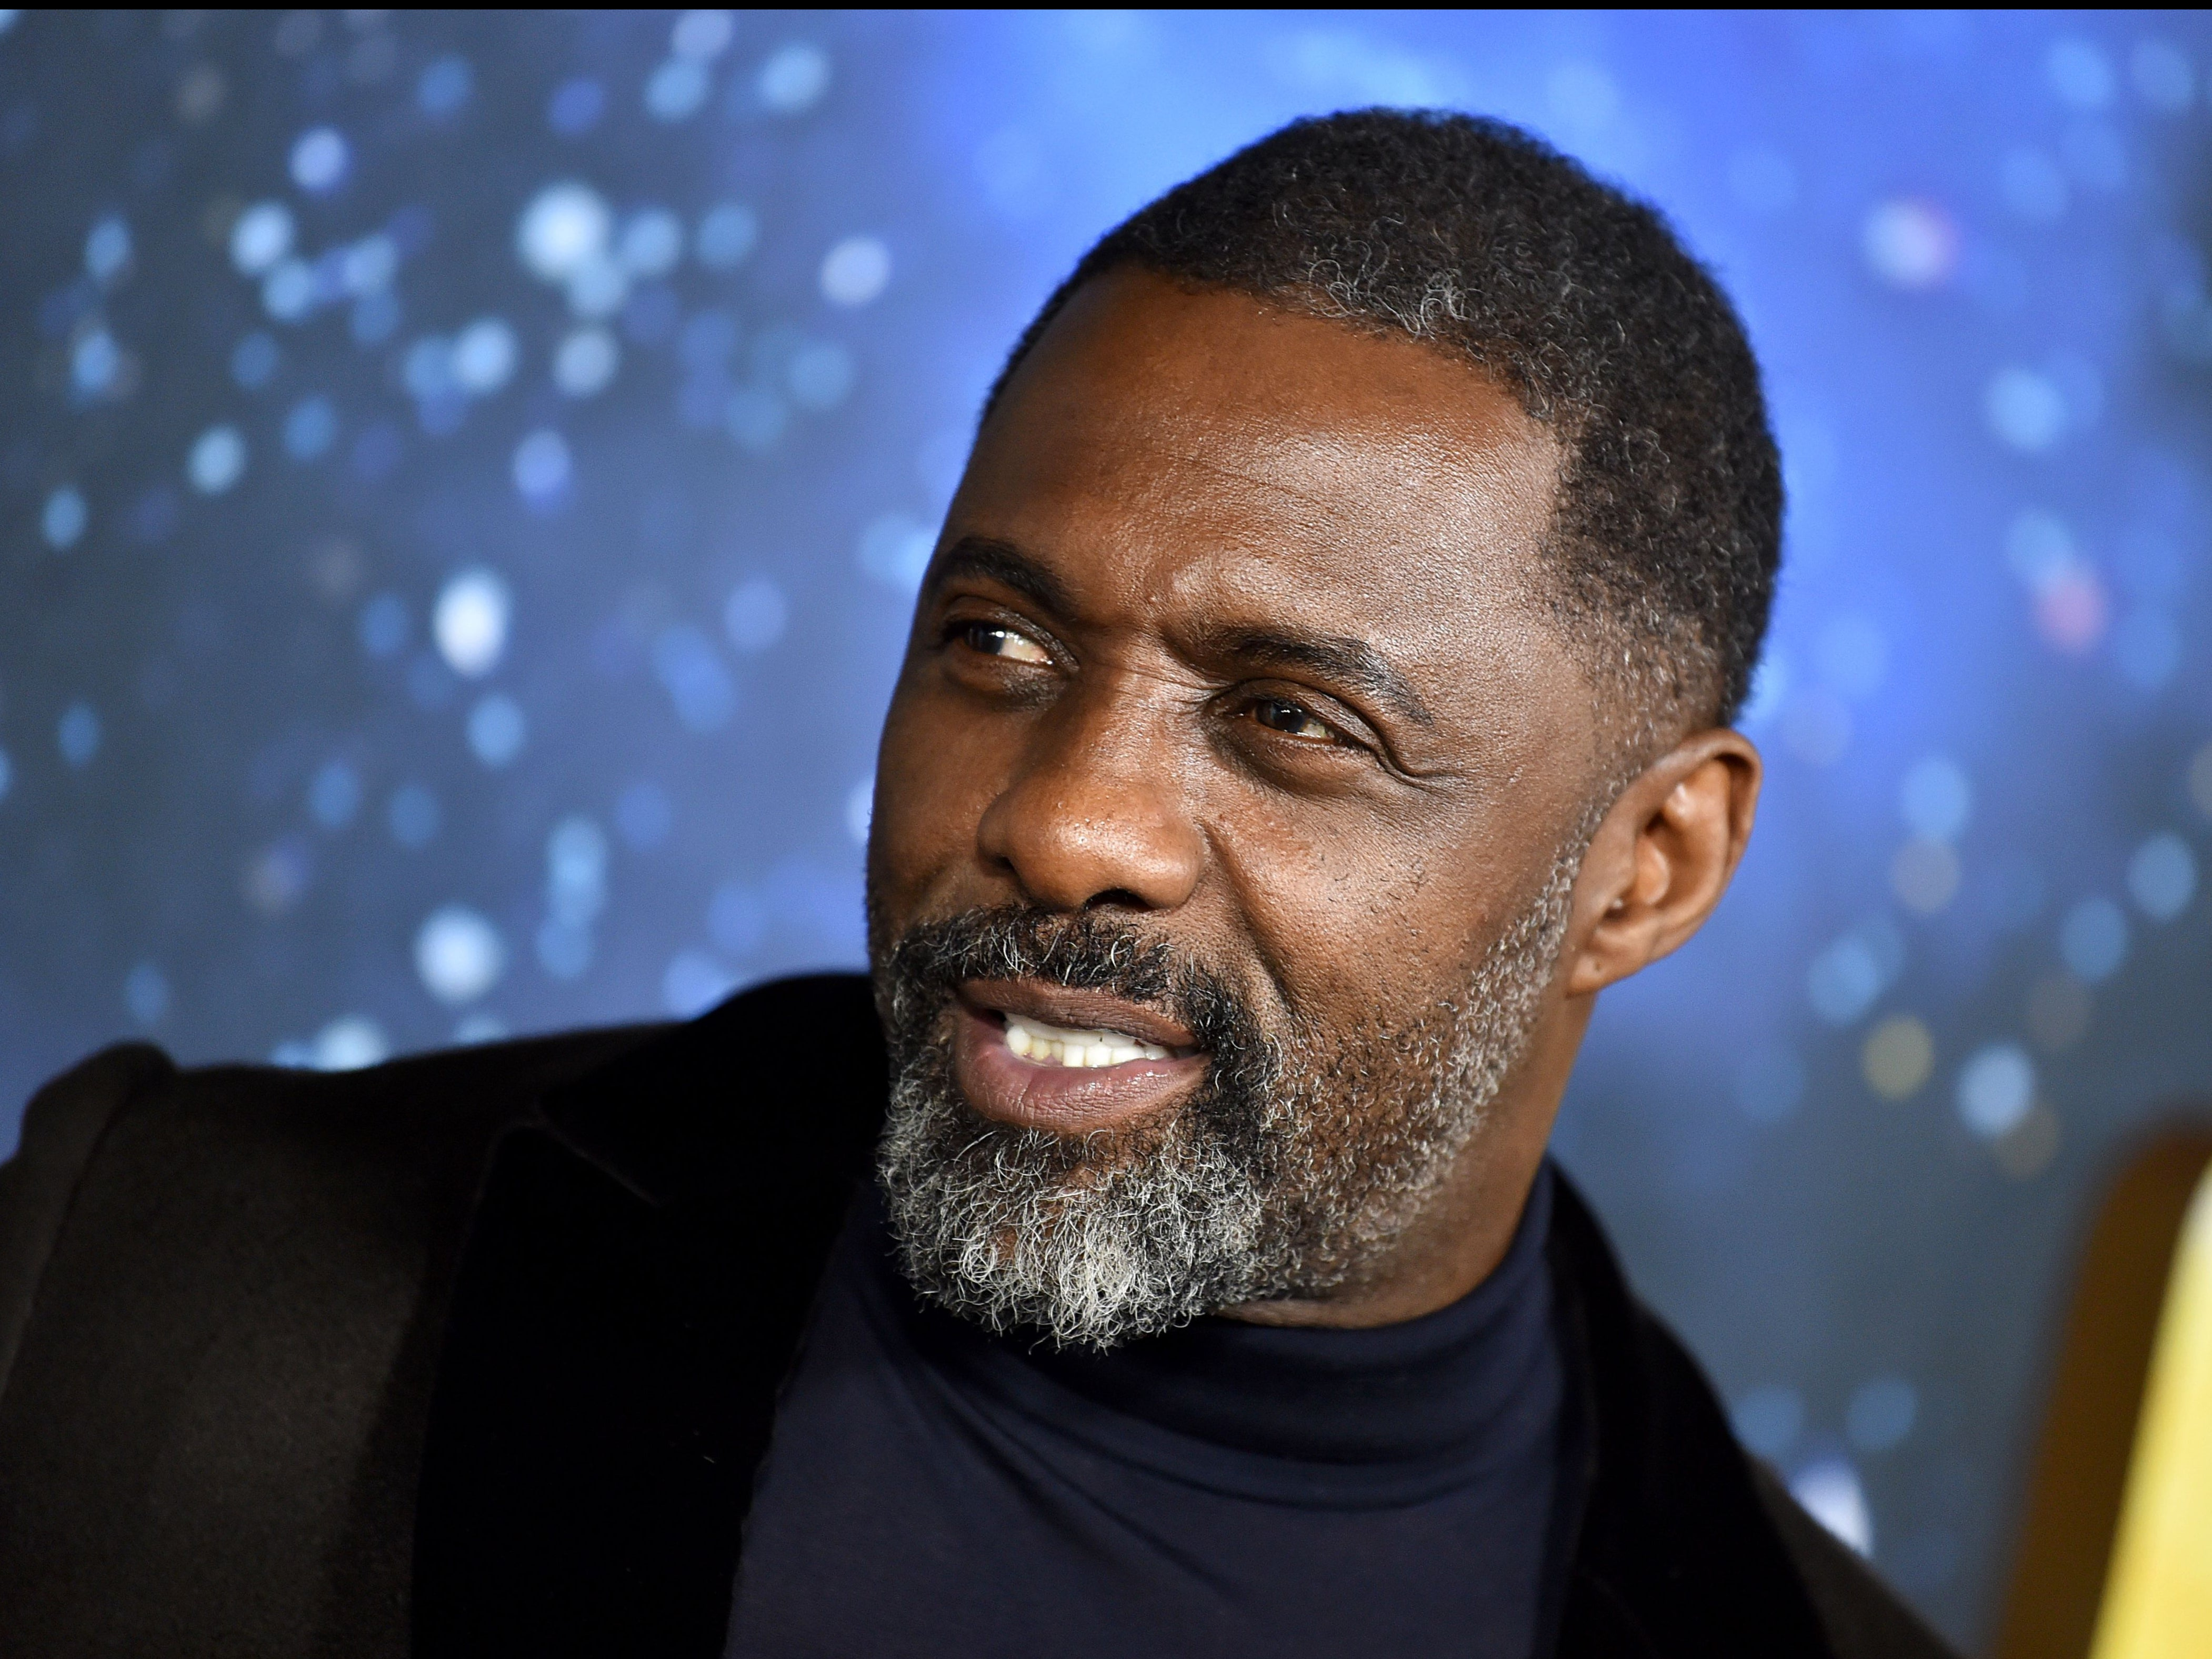 Idris Elba and Naomi Campbell call for LGBTQ+ rights in Ghana